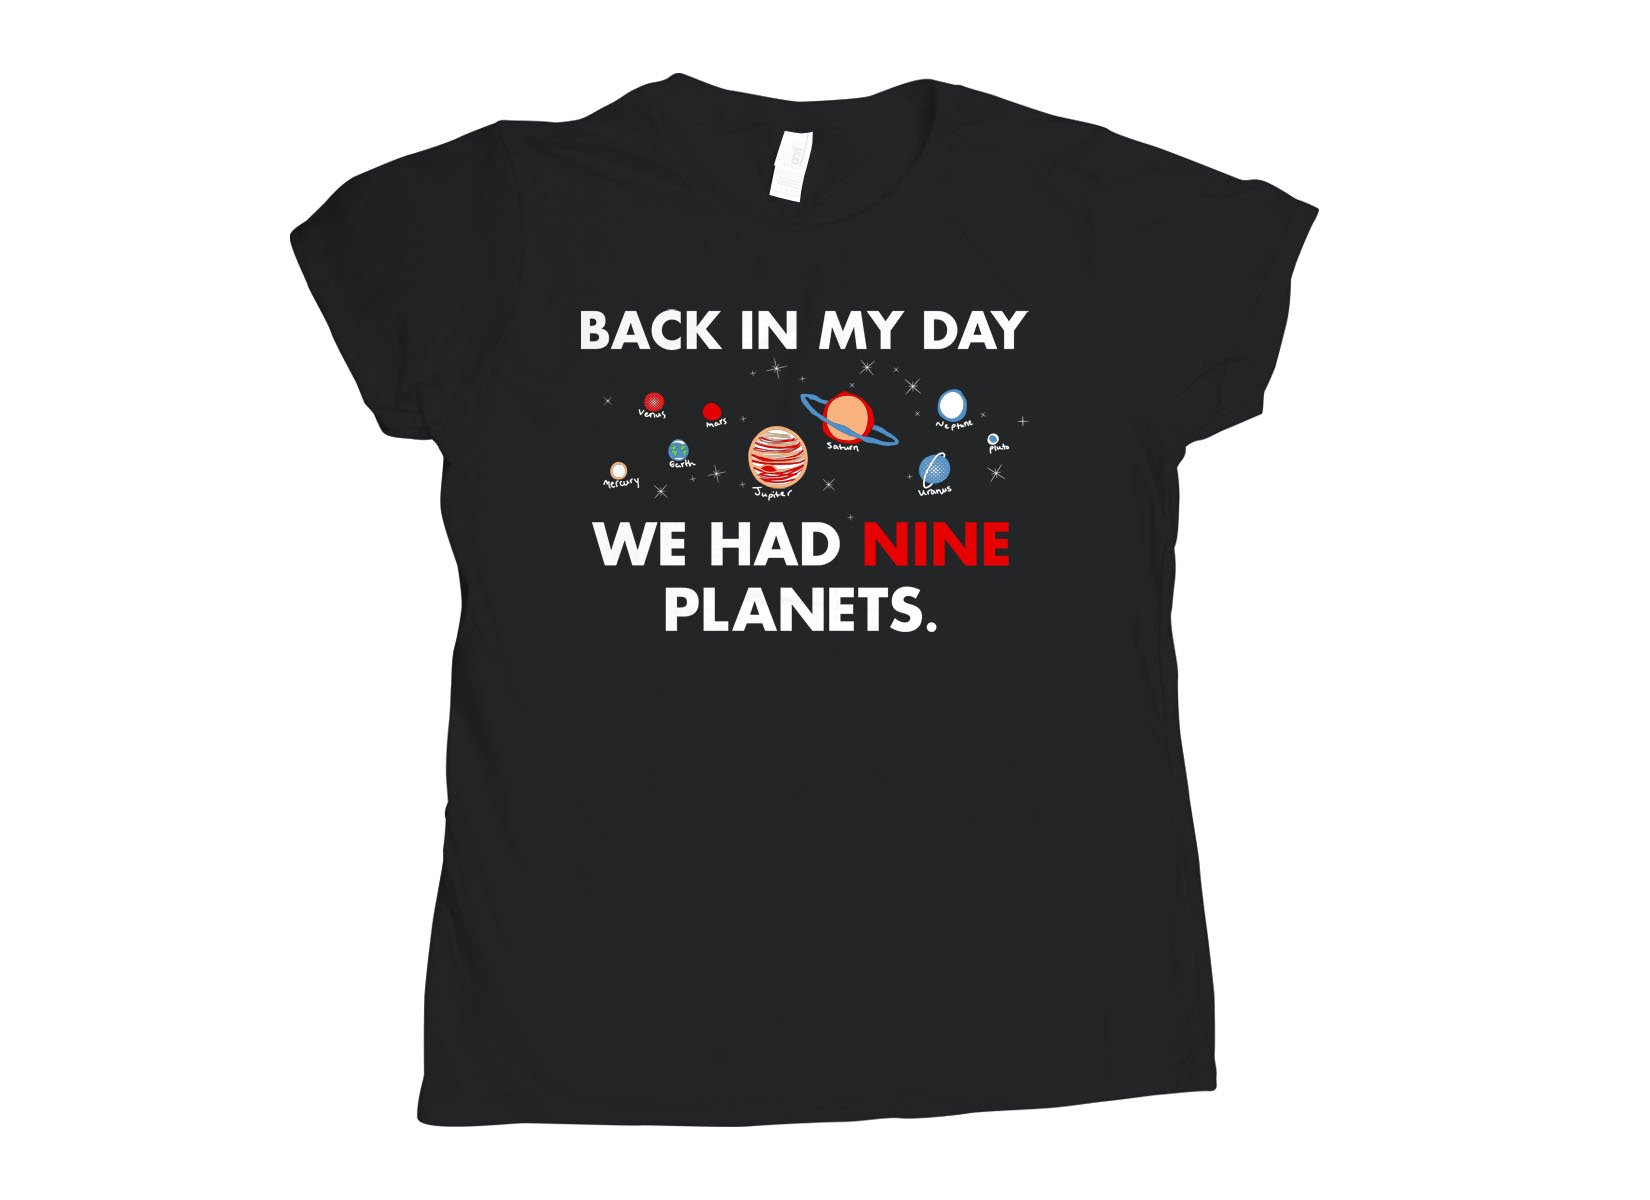 Back In My Day We Had Nine Planets on Womens T-Shirt